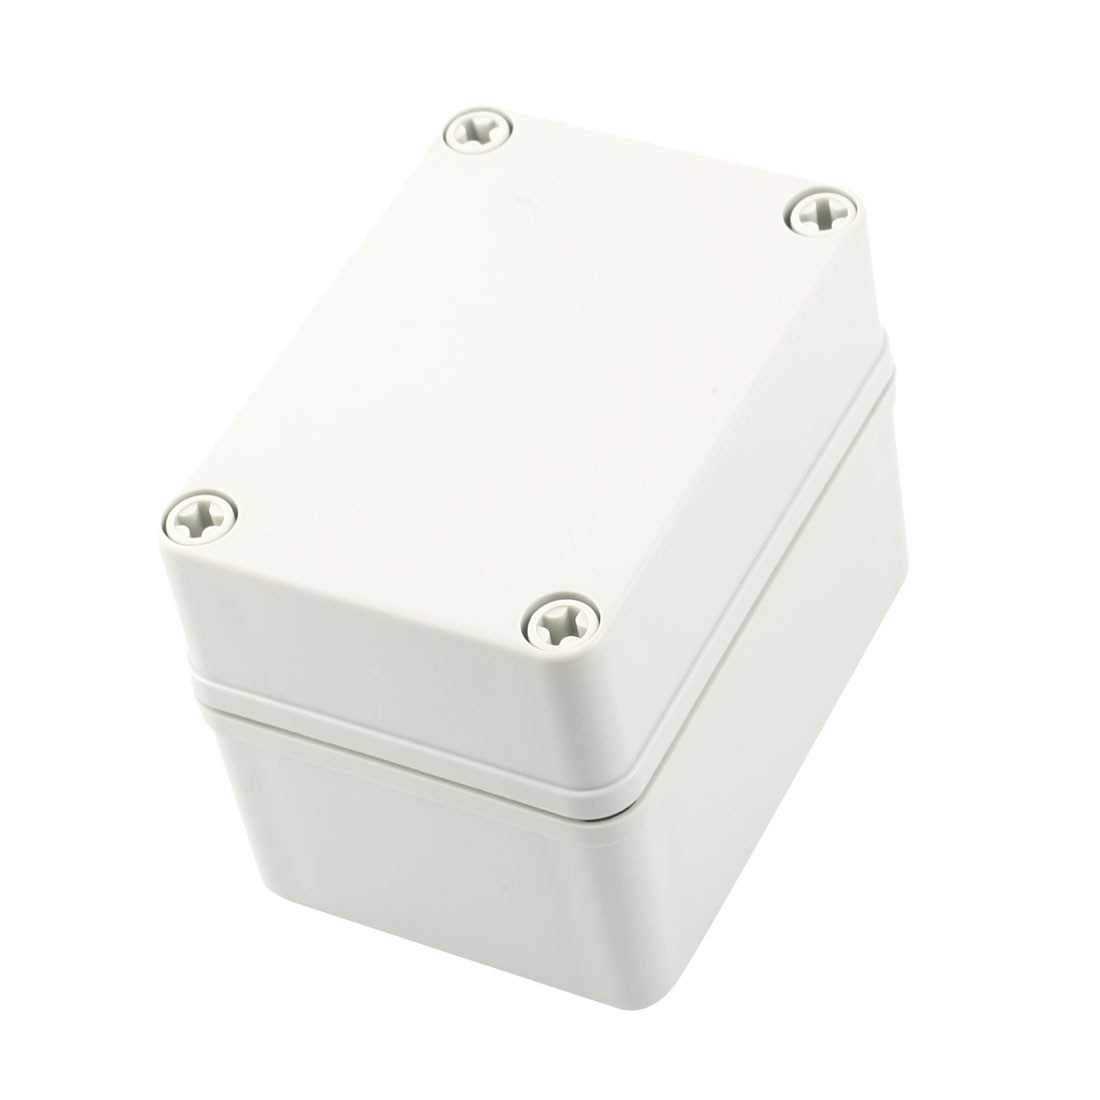 110mm x 85mm x 80mm Waterproof Rectangle Plastic Sealed Junction Enclose Box Power Protection Case